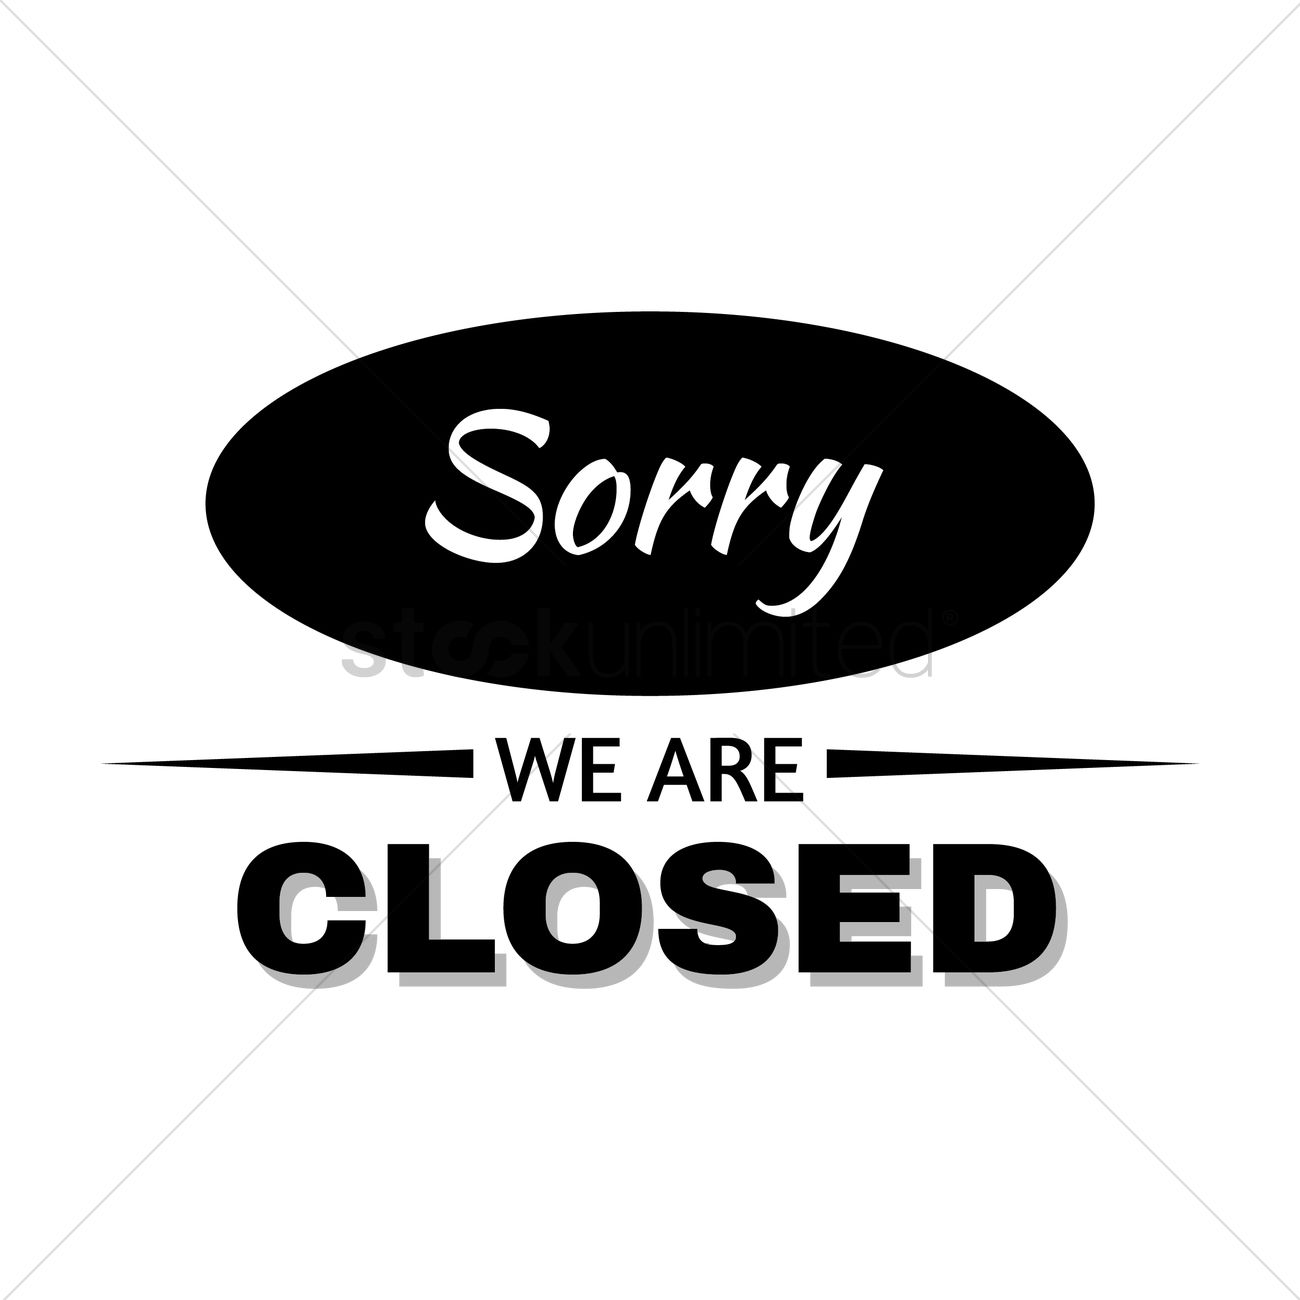 Sorry We Are Closed Text Vector Image